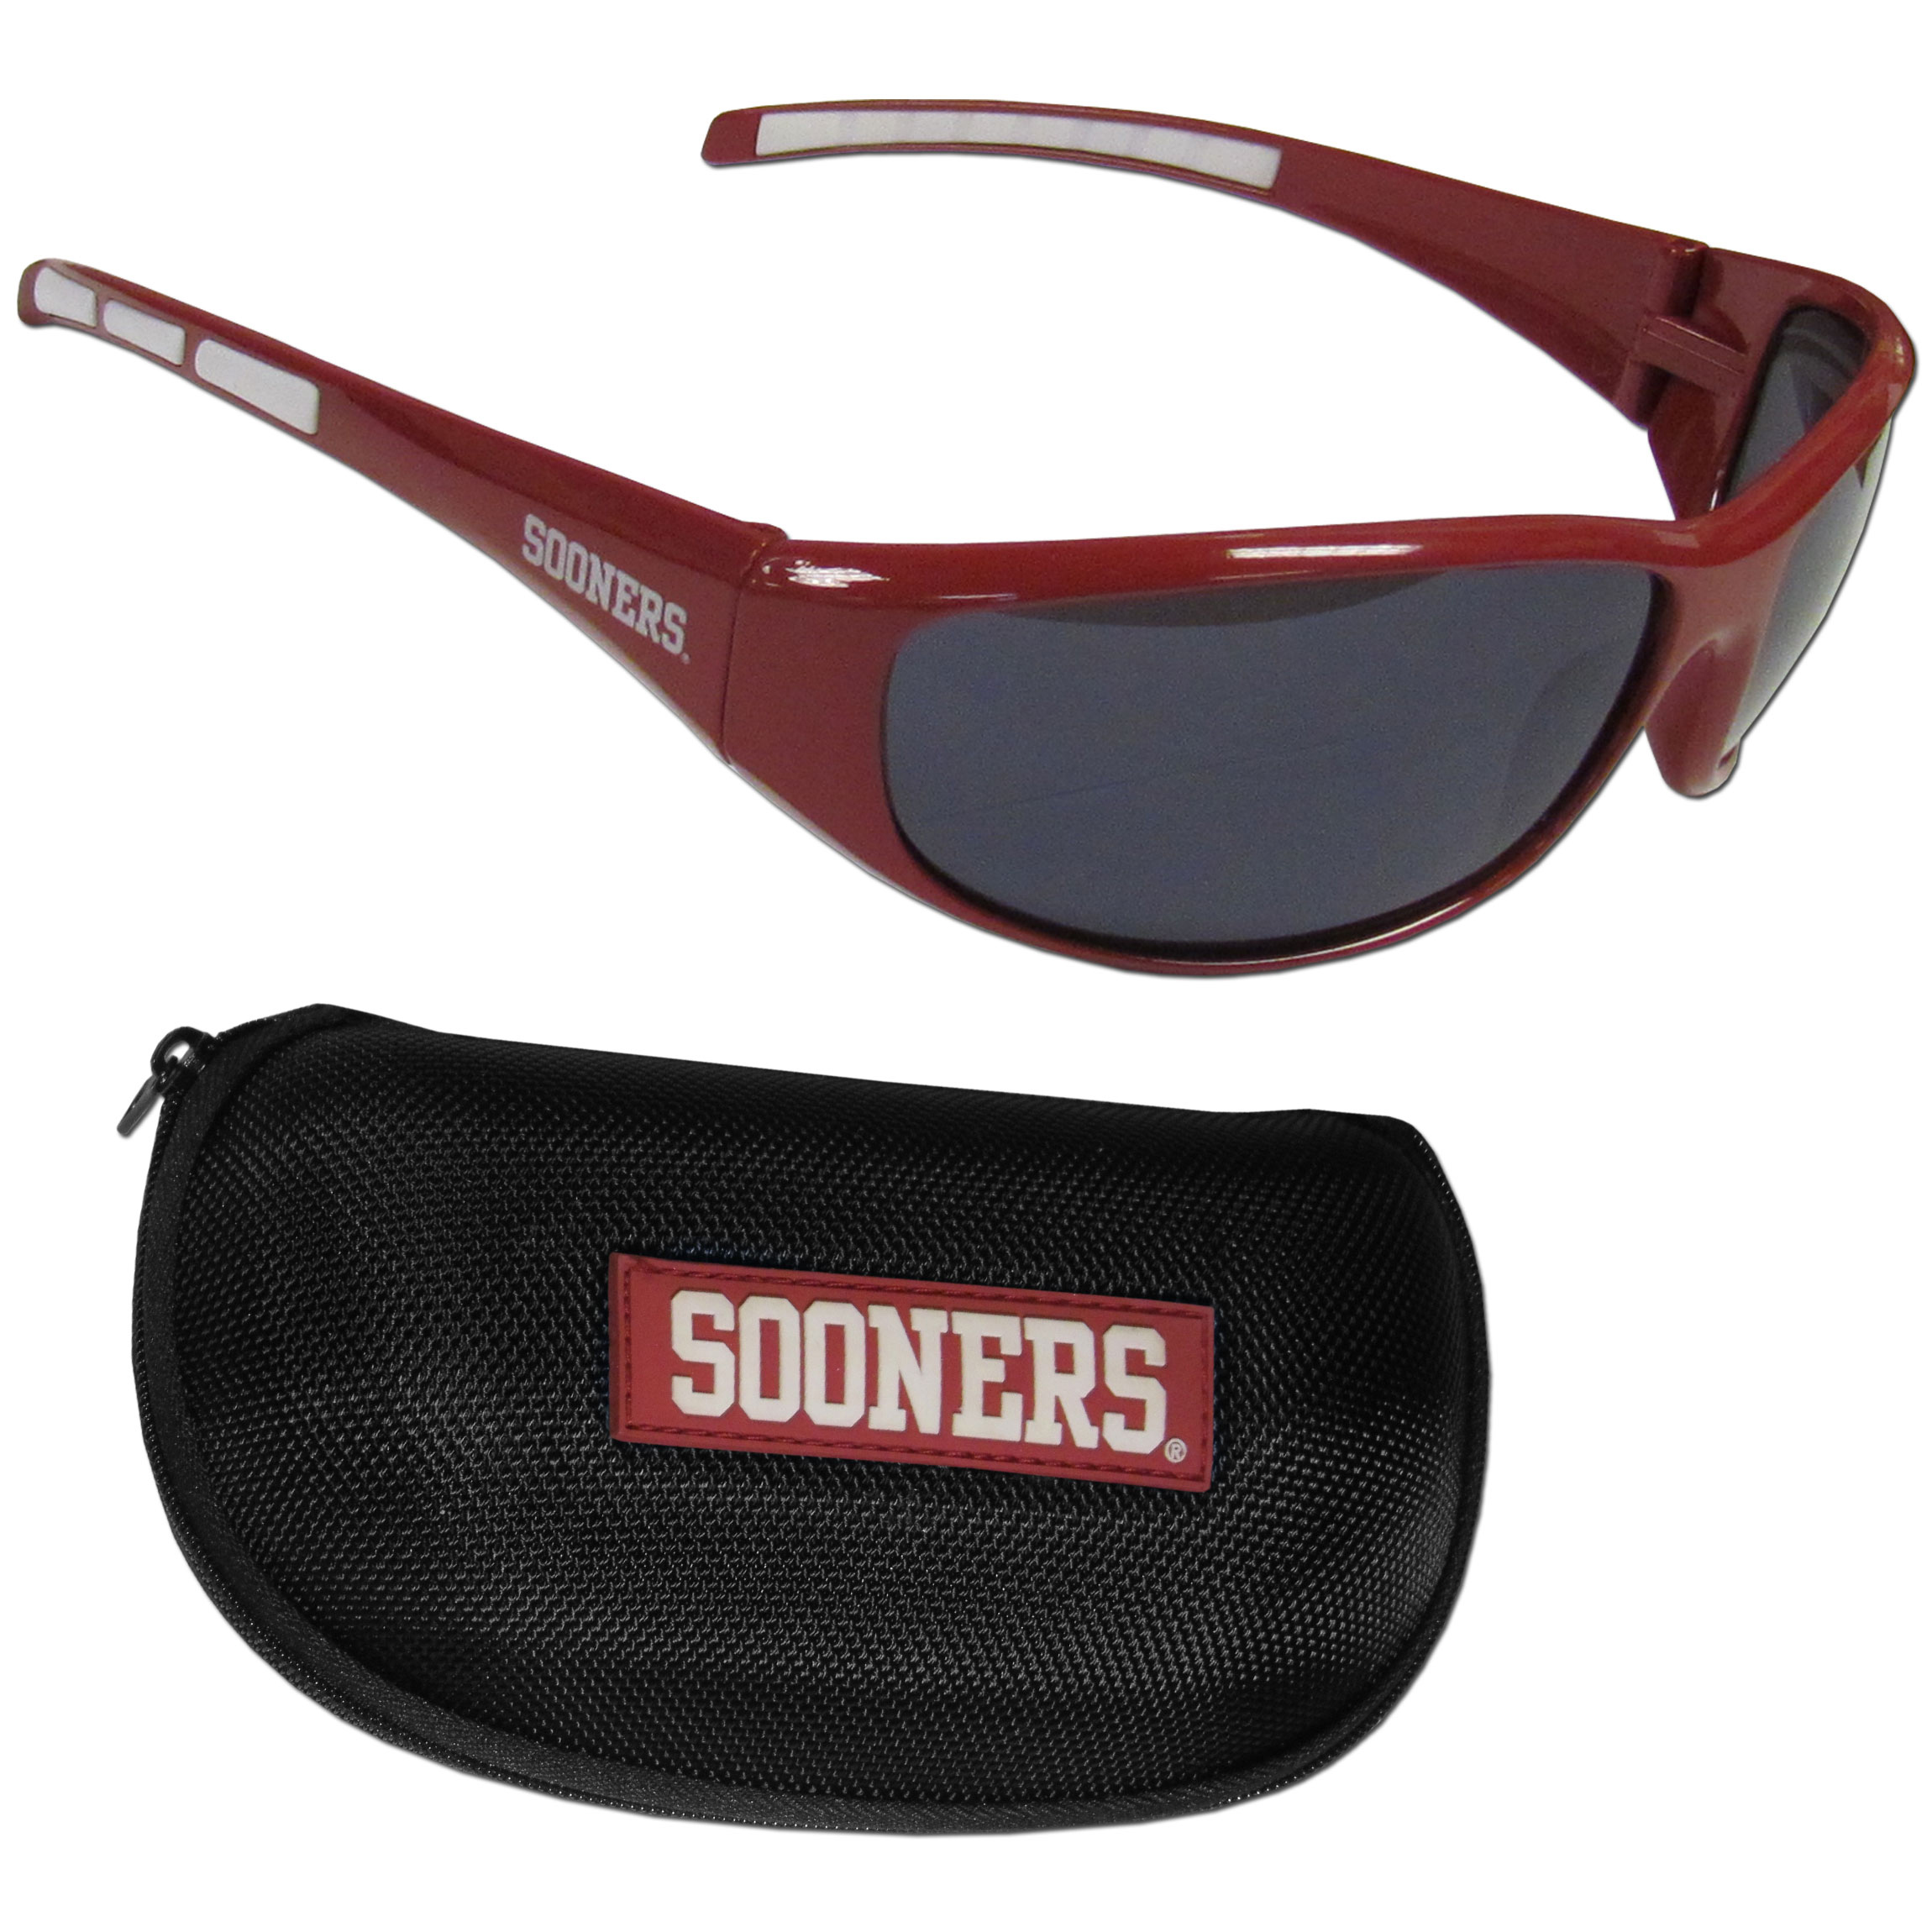 Oklahoma Sooners Wrap Sunglass and Case Set - This great set includes a high quality pair of Oklahoma Sooners wrap sunglasses and hard carrying case.